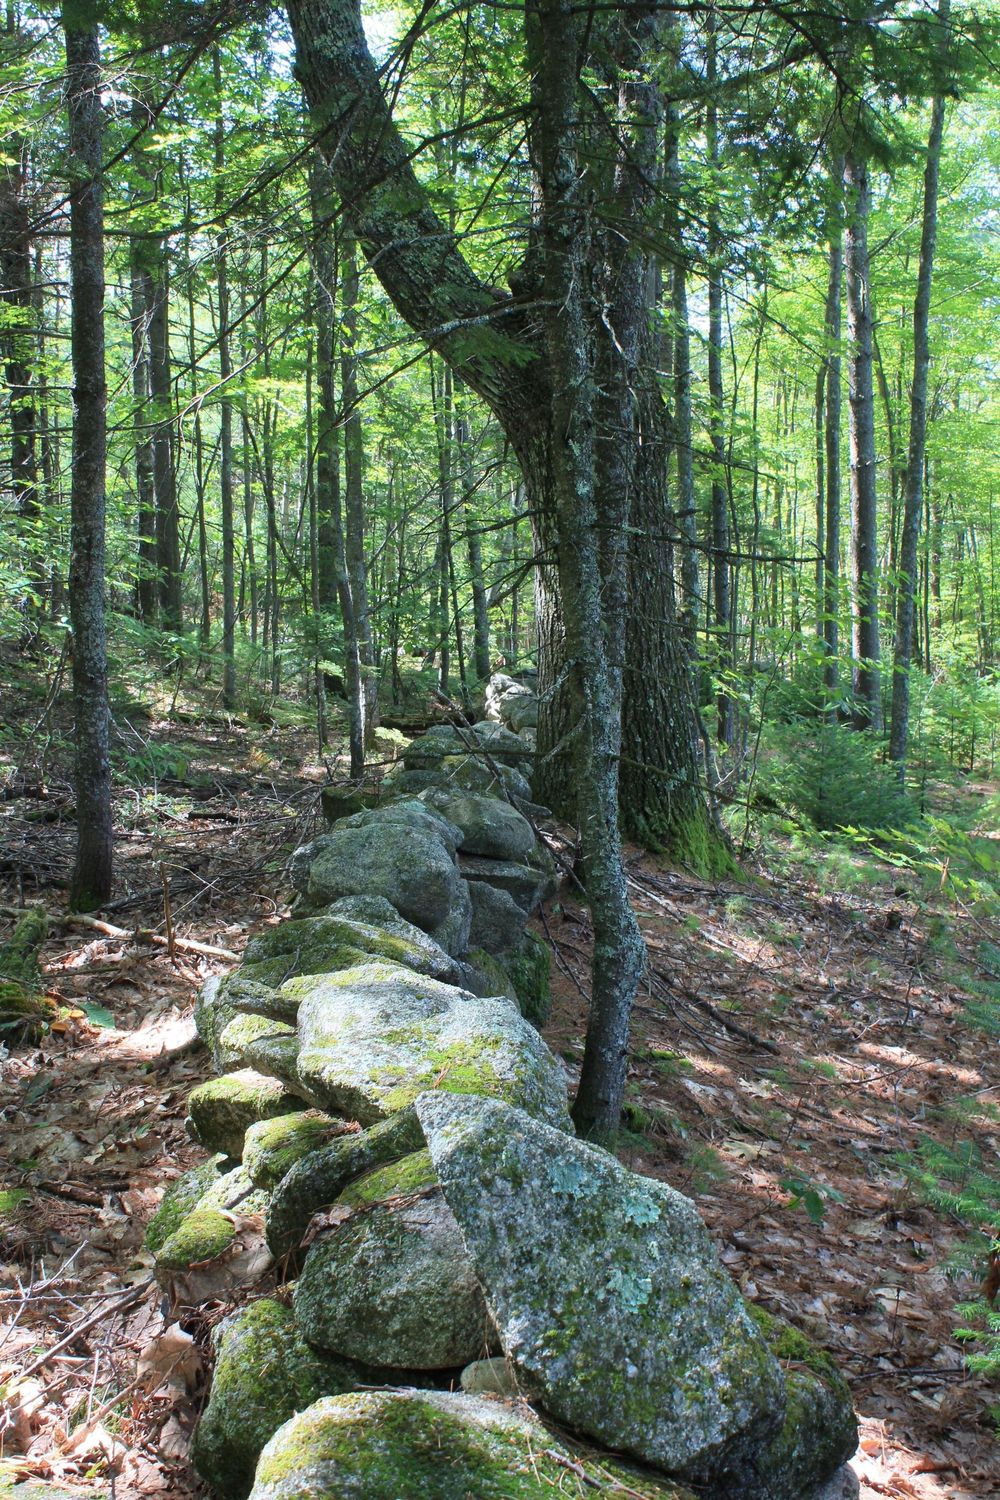 Stone Wall - image 1 - student project